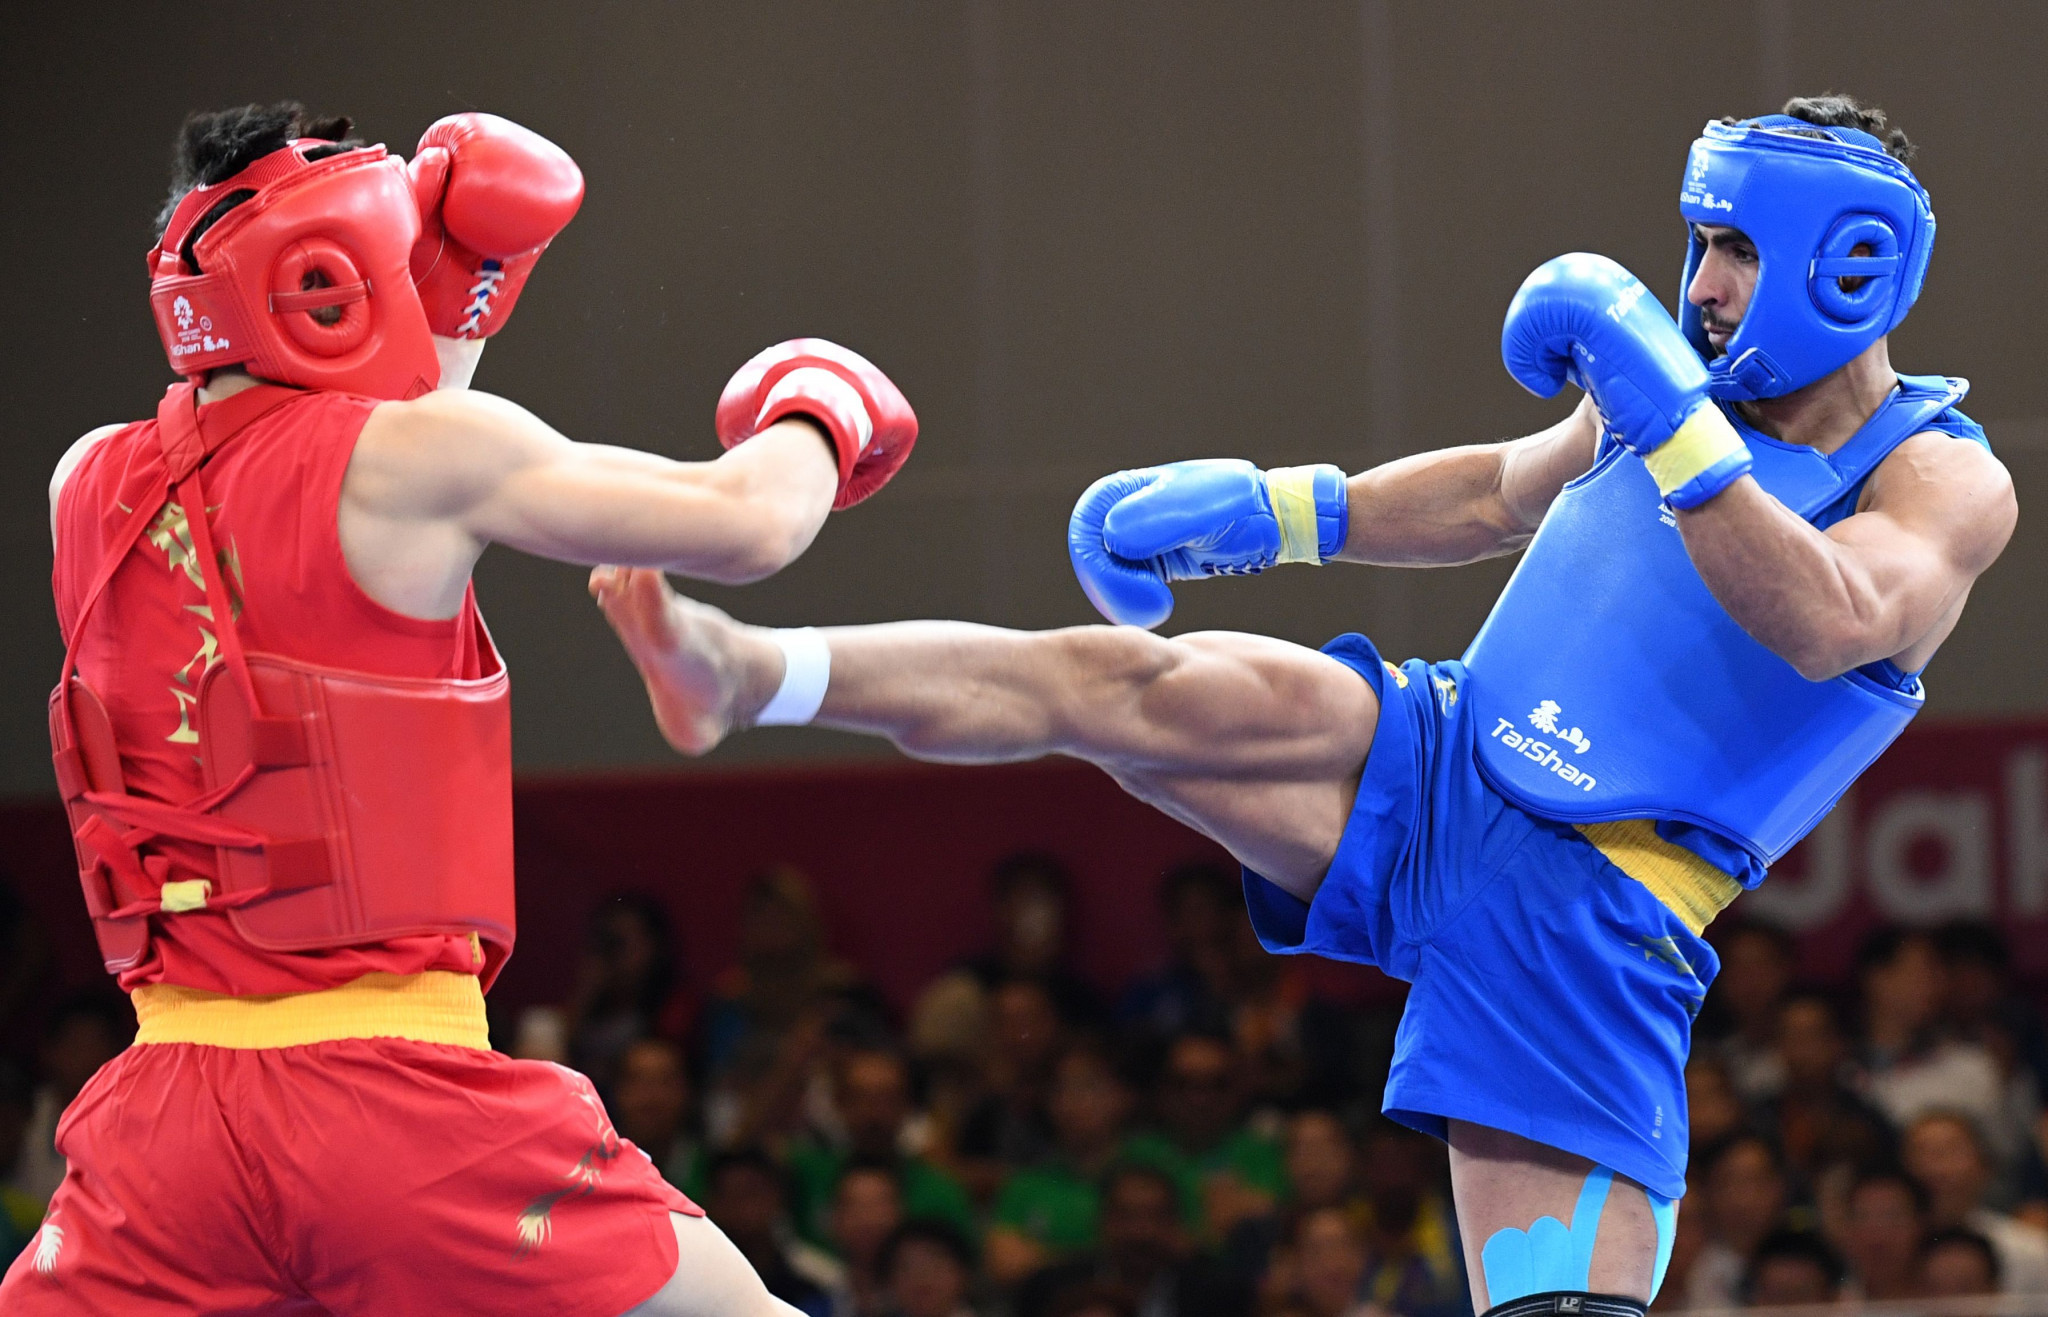 The International Wushu Federation has joined the IWGA as a full member with the sport set to make its third World Games appearance next year ©Getty Images